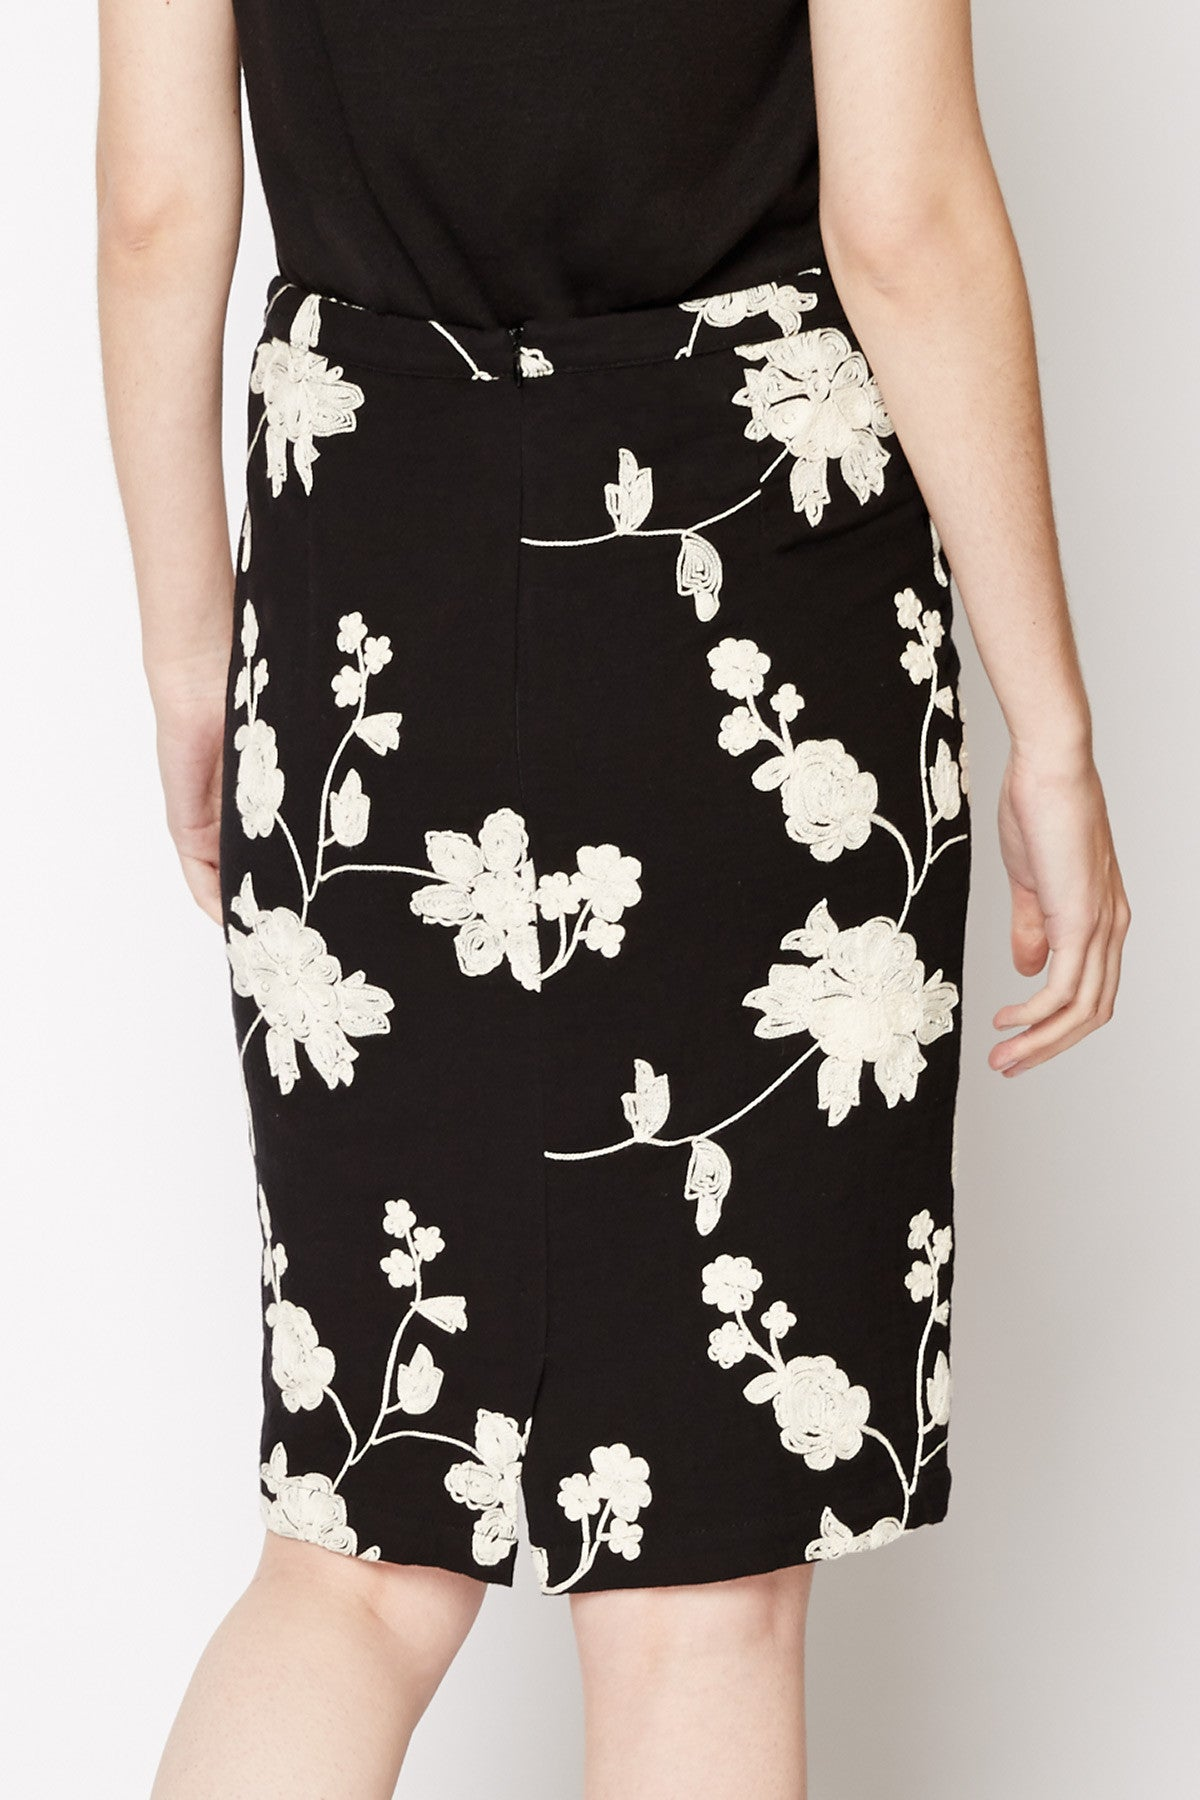 Thalassa Floral Pencil Skirt by Tulle